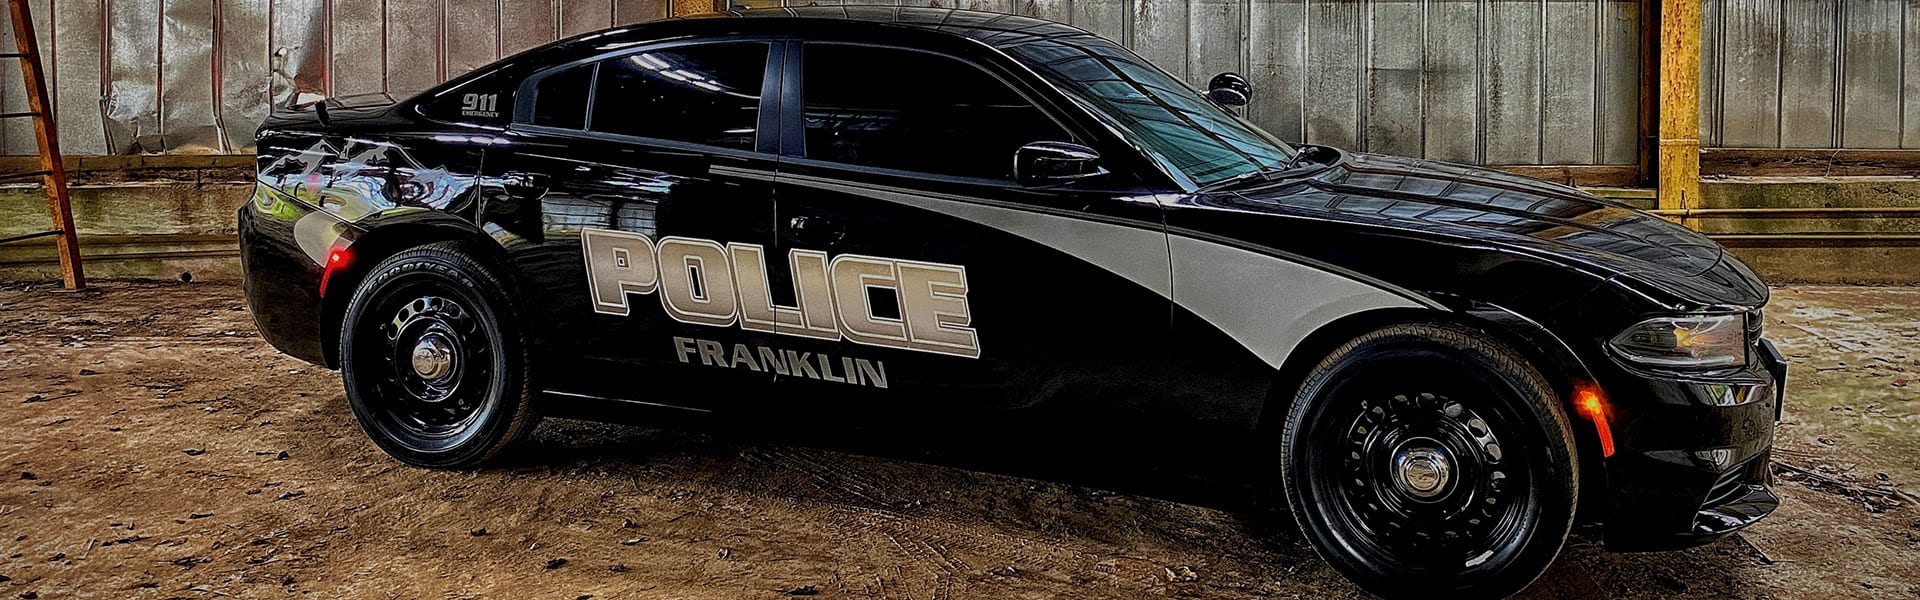 Police Department Divisions | Town of Franklin NC